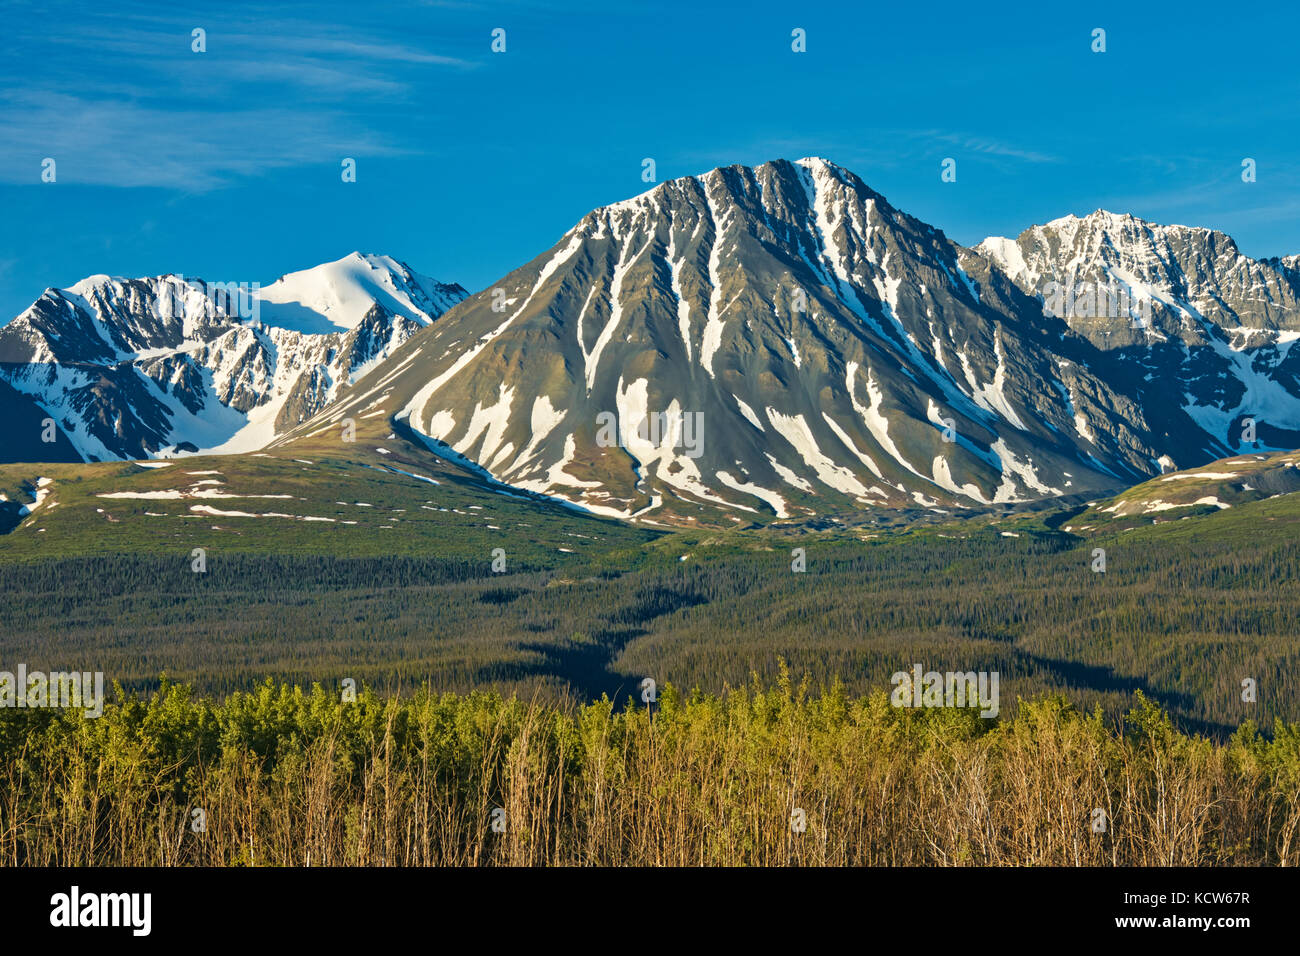 St. Elias Mountains ear Haines Junction, Yukon, Canada - Stock Image